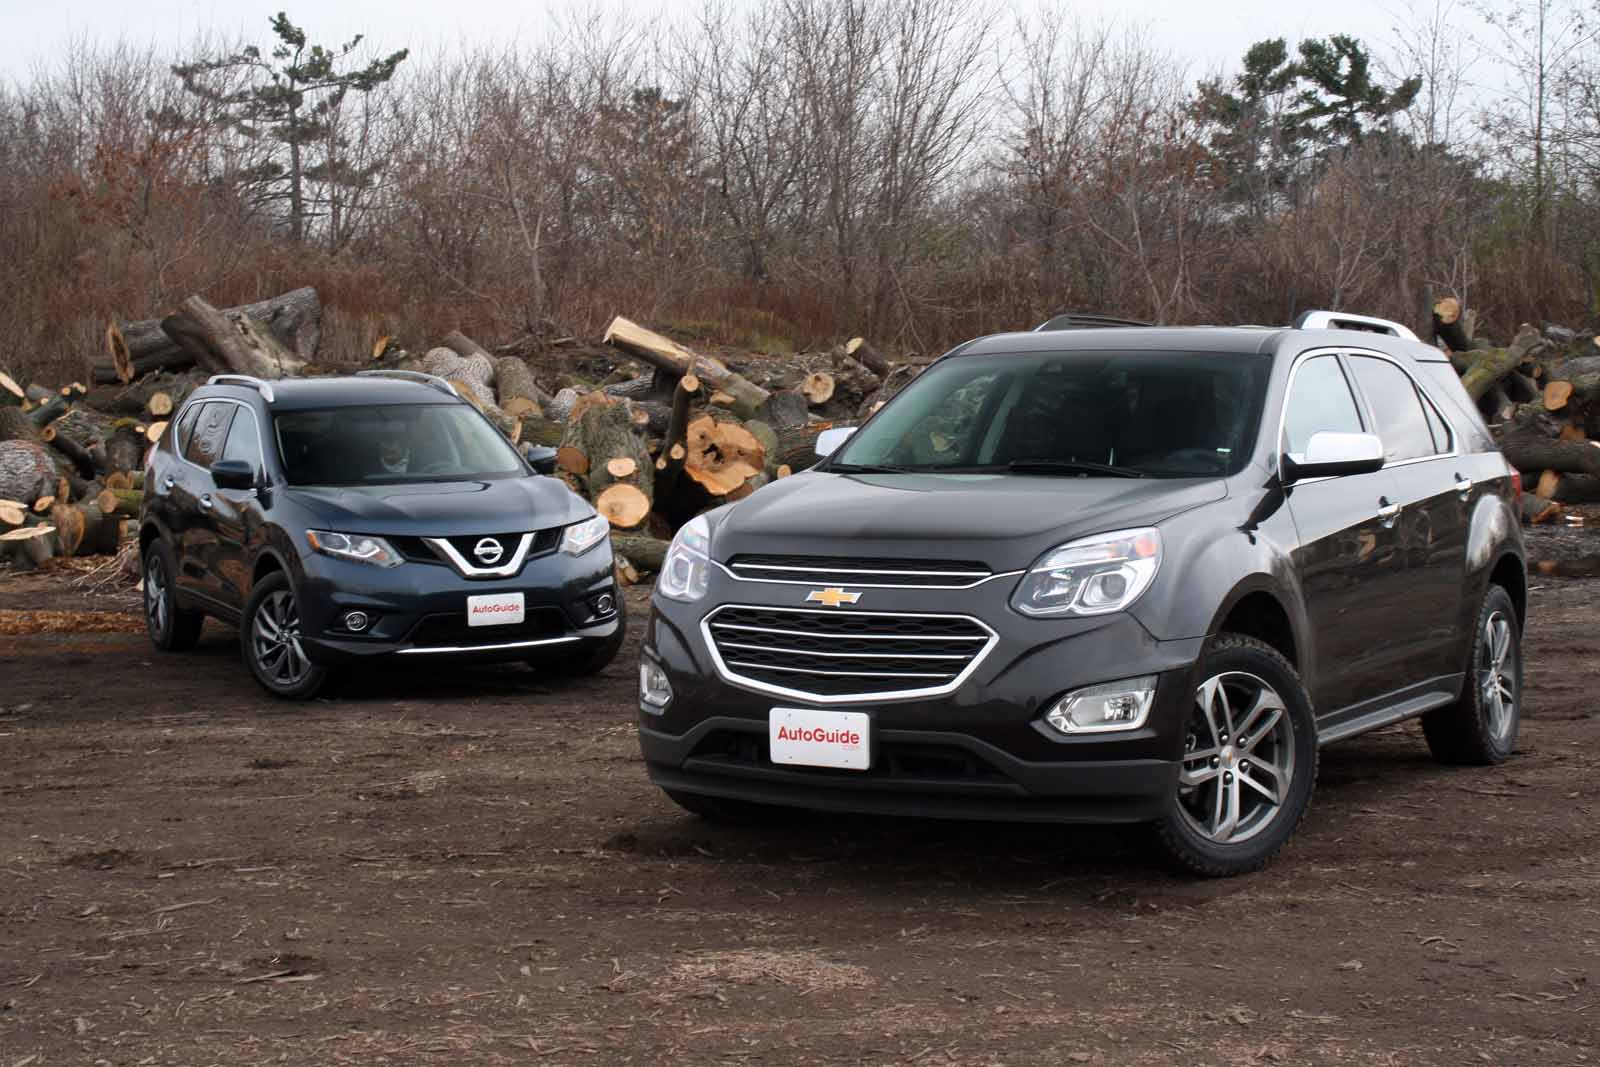 What Does Chevy Stand For >> 2016 Chevrolet Equinox vs 2016 Nissan Rogue - AutoGuide.com